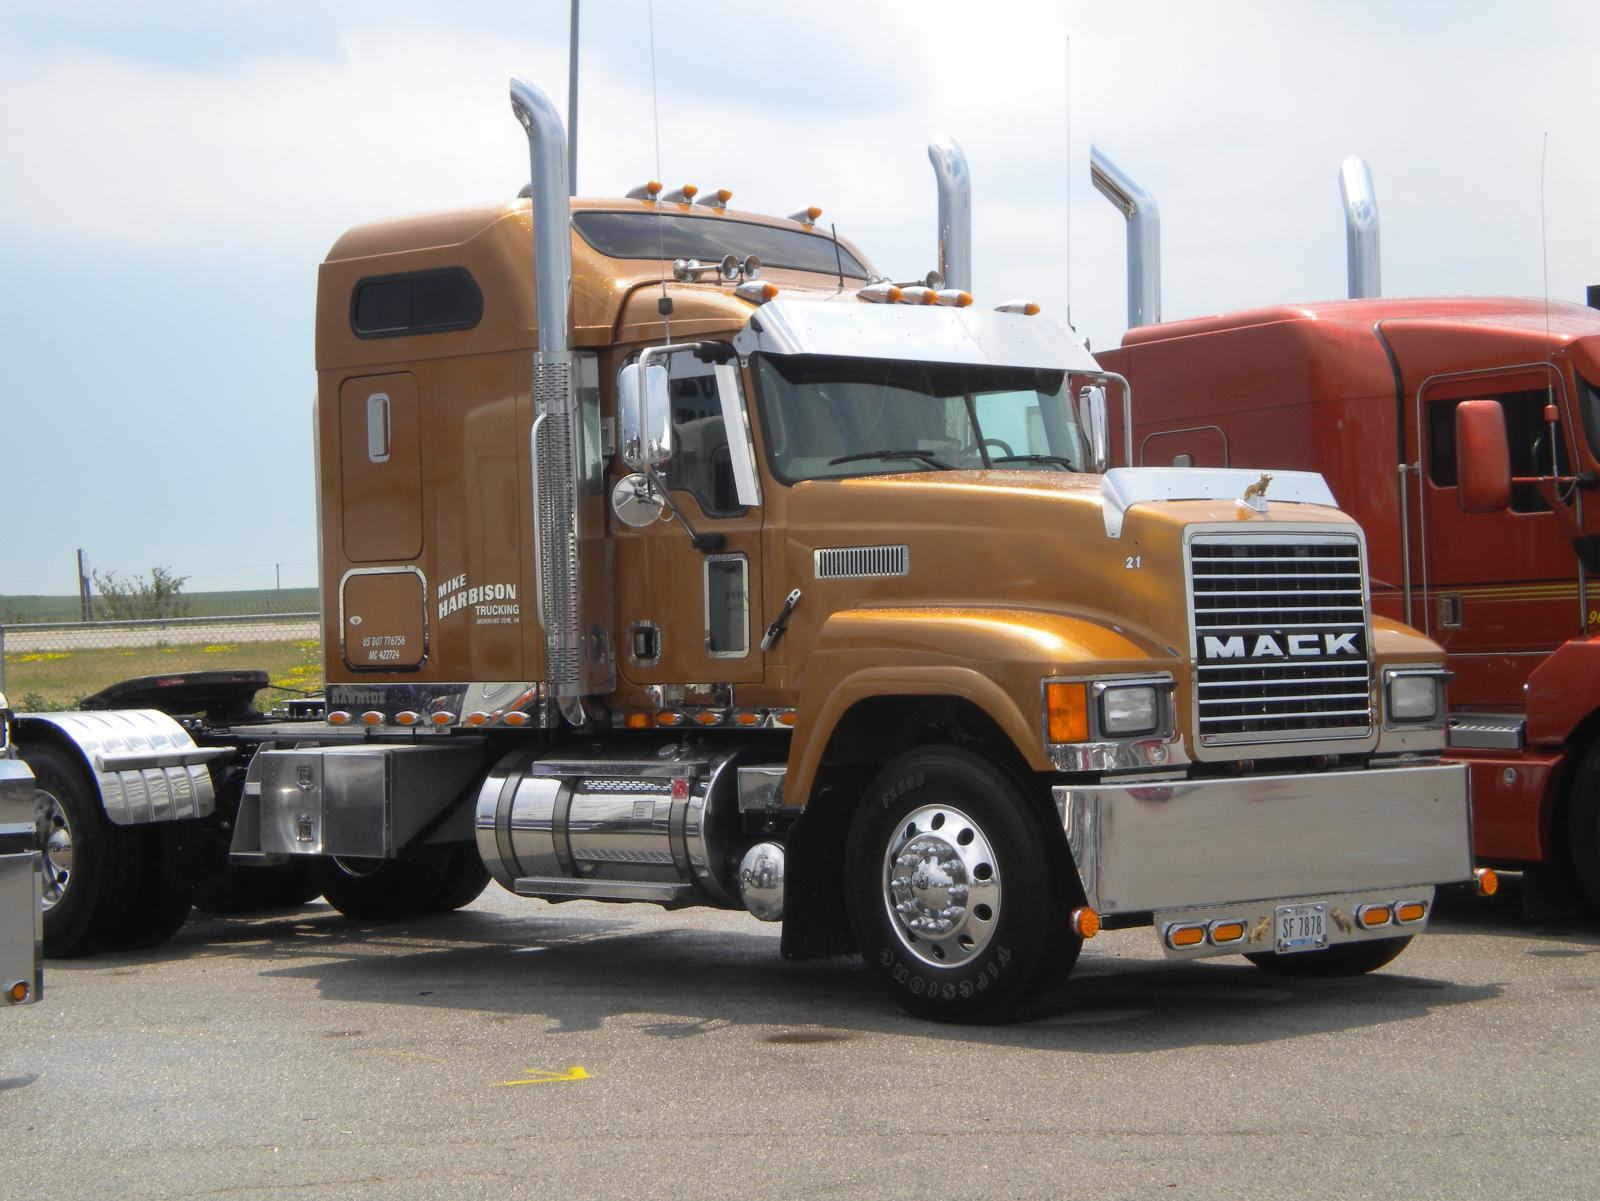 Mack Truck 2013 furthermore Truck furthermore Watch besides 1003080834 likewise Cab over. on mack dump trucks